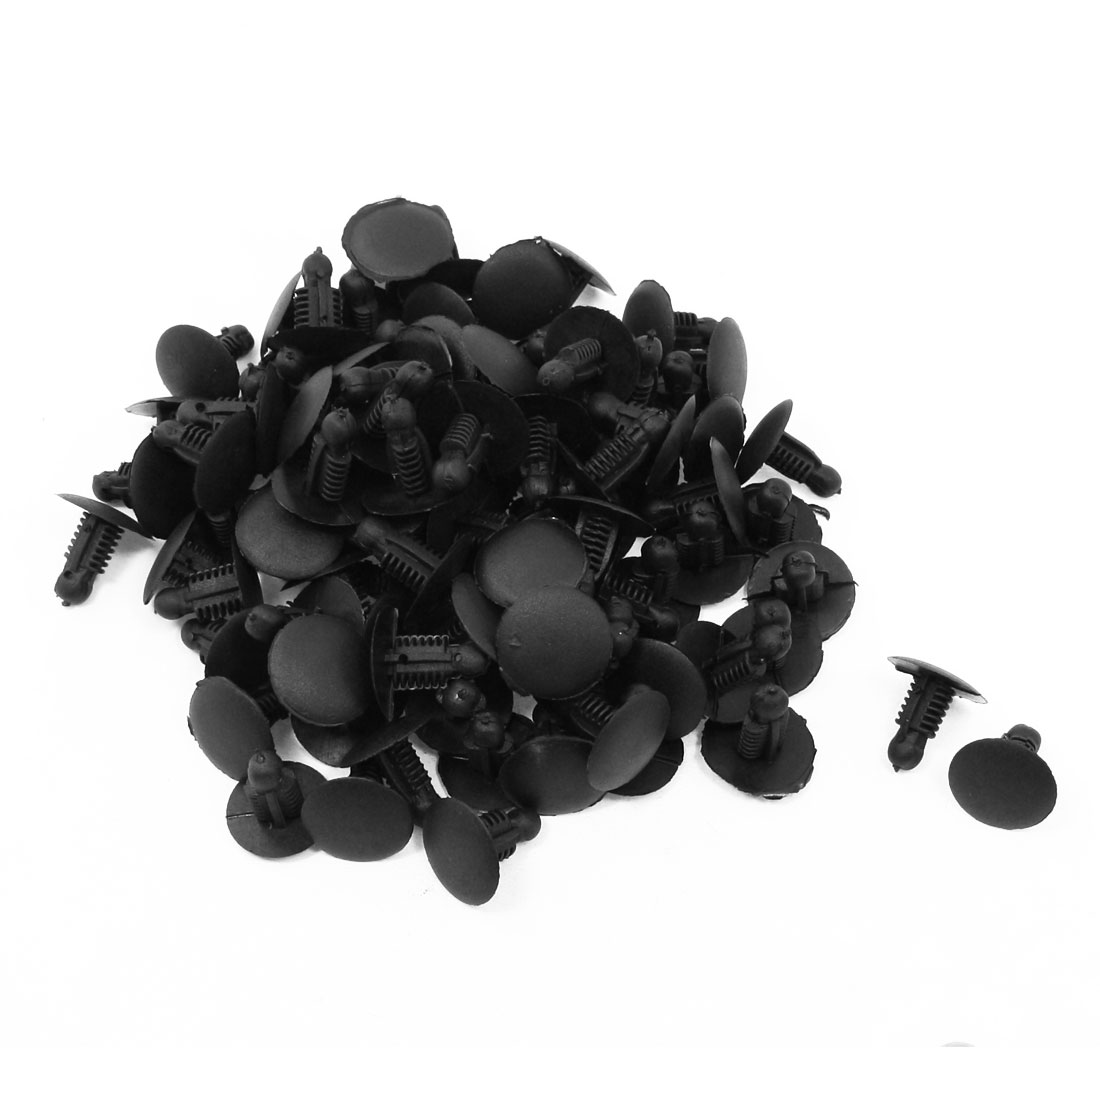 100 Pcs Auto Car Door Fender 9x7mm Hole Push Plastic Rivets Fastener Black